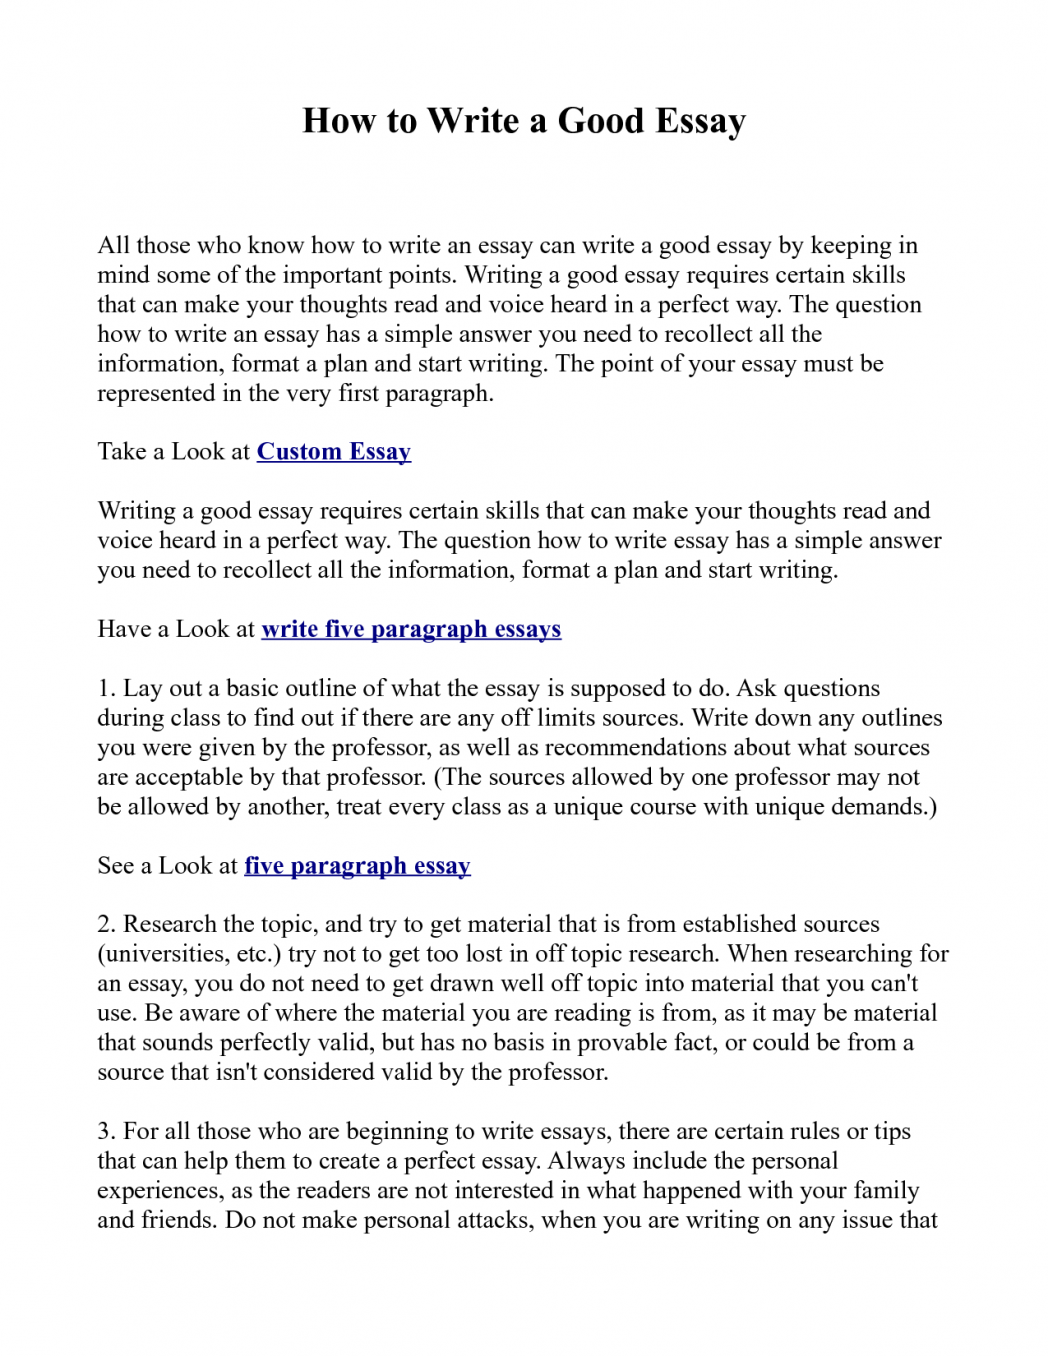 001 How To Type An Essay Of Essays Writing Write Excellent The Perfect Types Slideshare Ex1id Ppt Pdf Withs In Hindi Wikipedia Task 1048x1356 Awesome Fast A One Page Paper Apa Format Mla On Mac Full